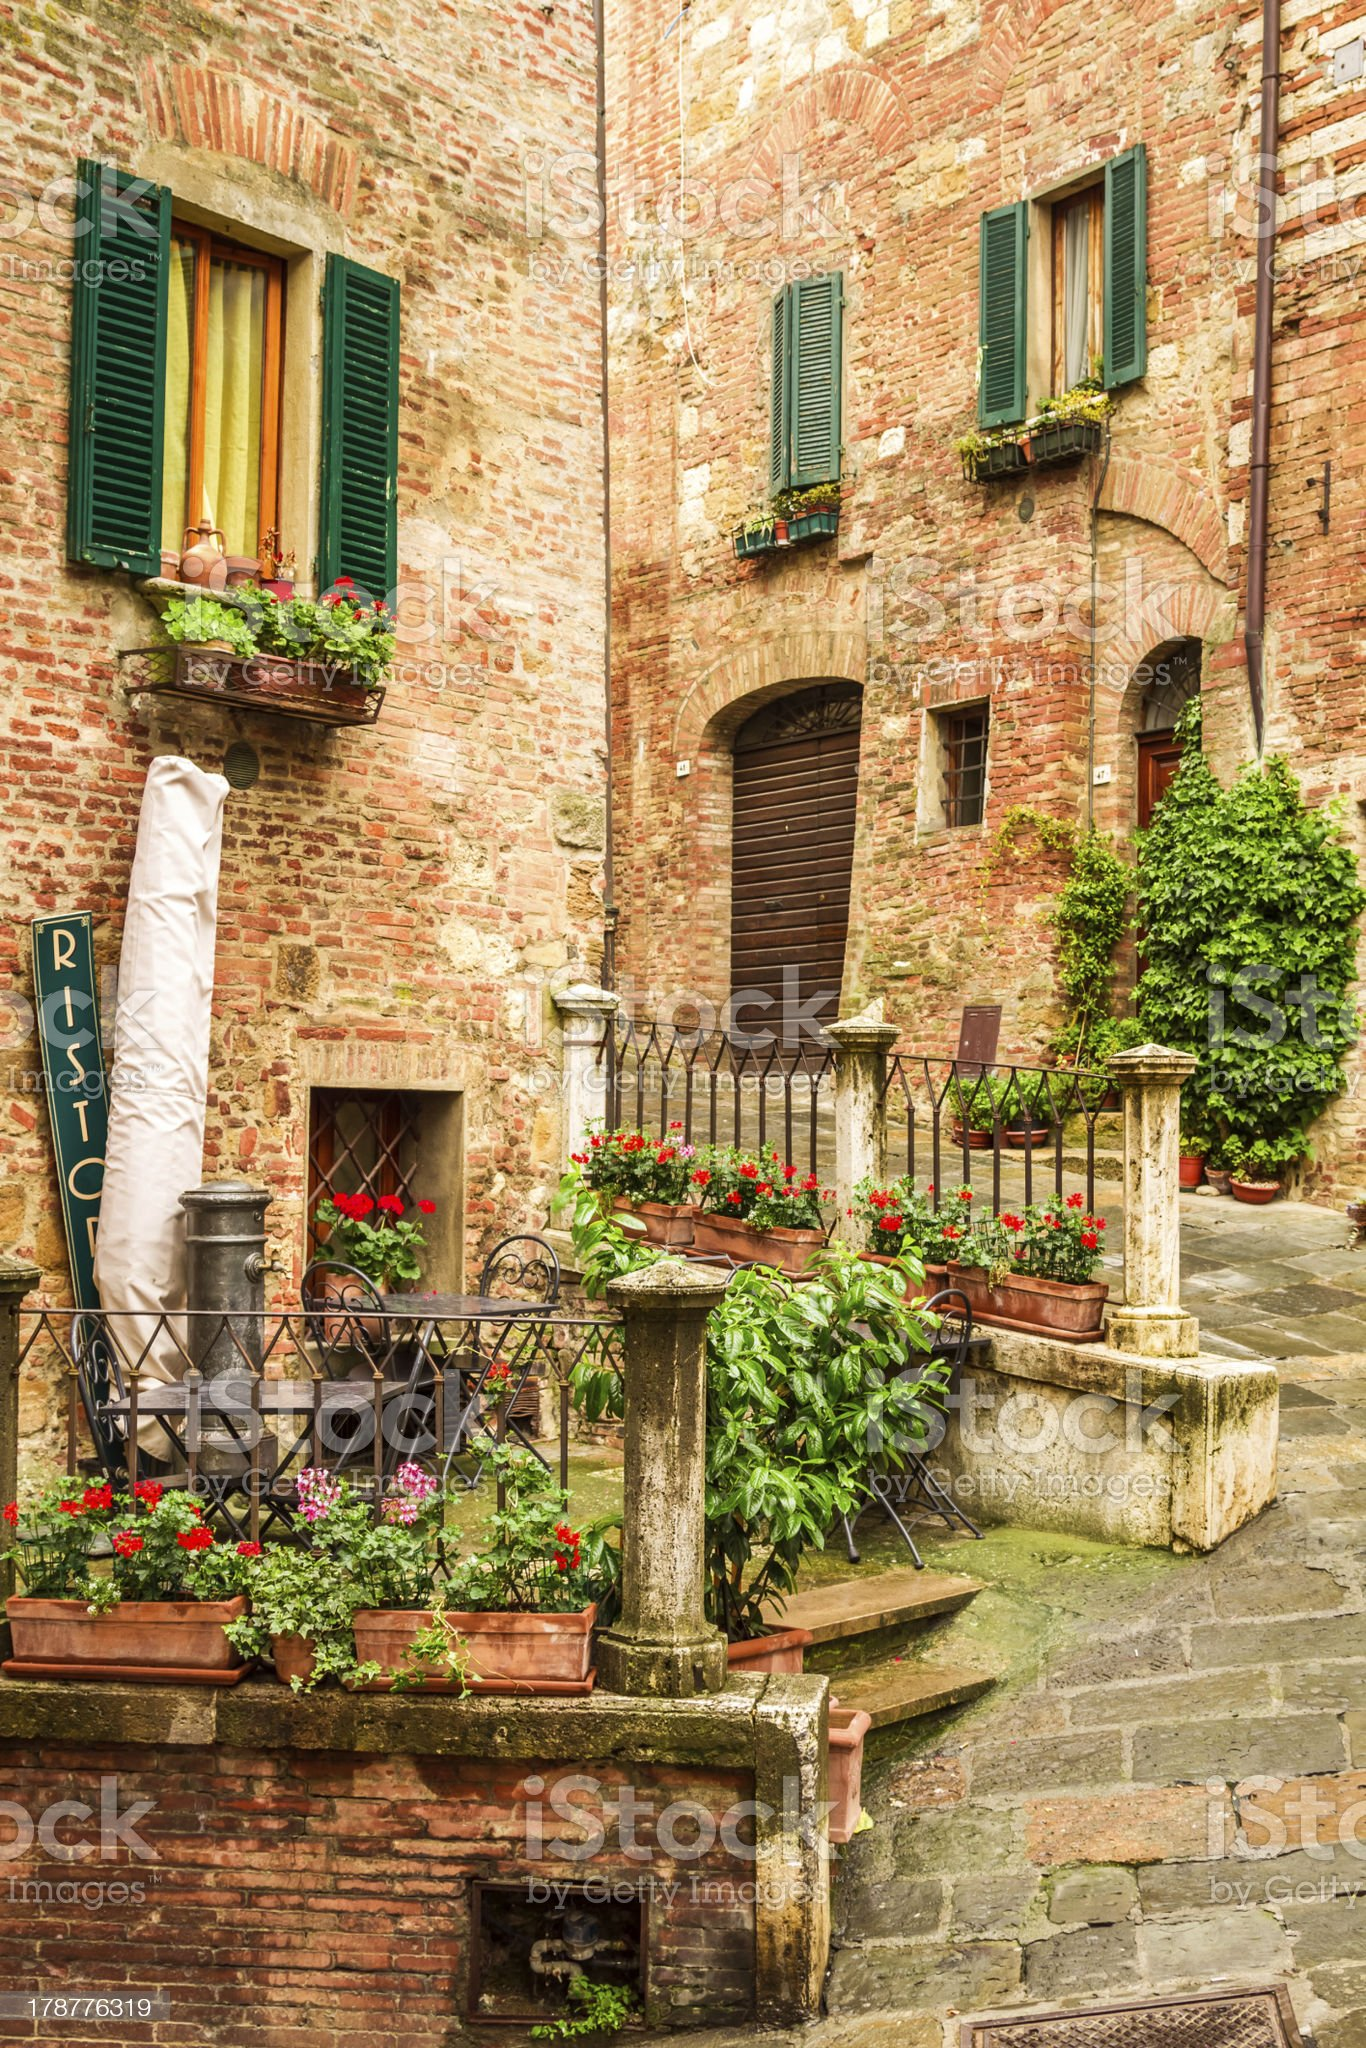 Vintage buildings in Italy royalty-free stock photo